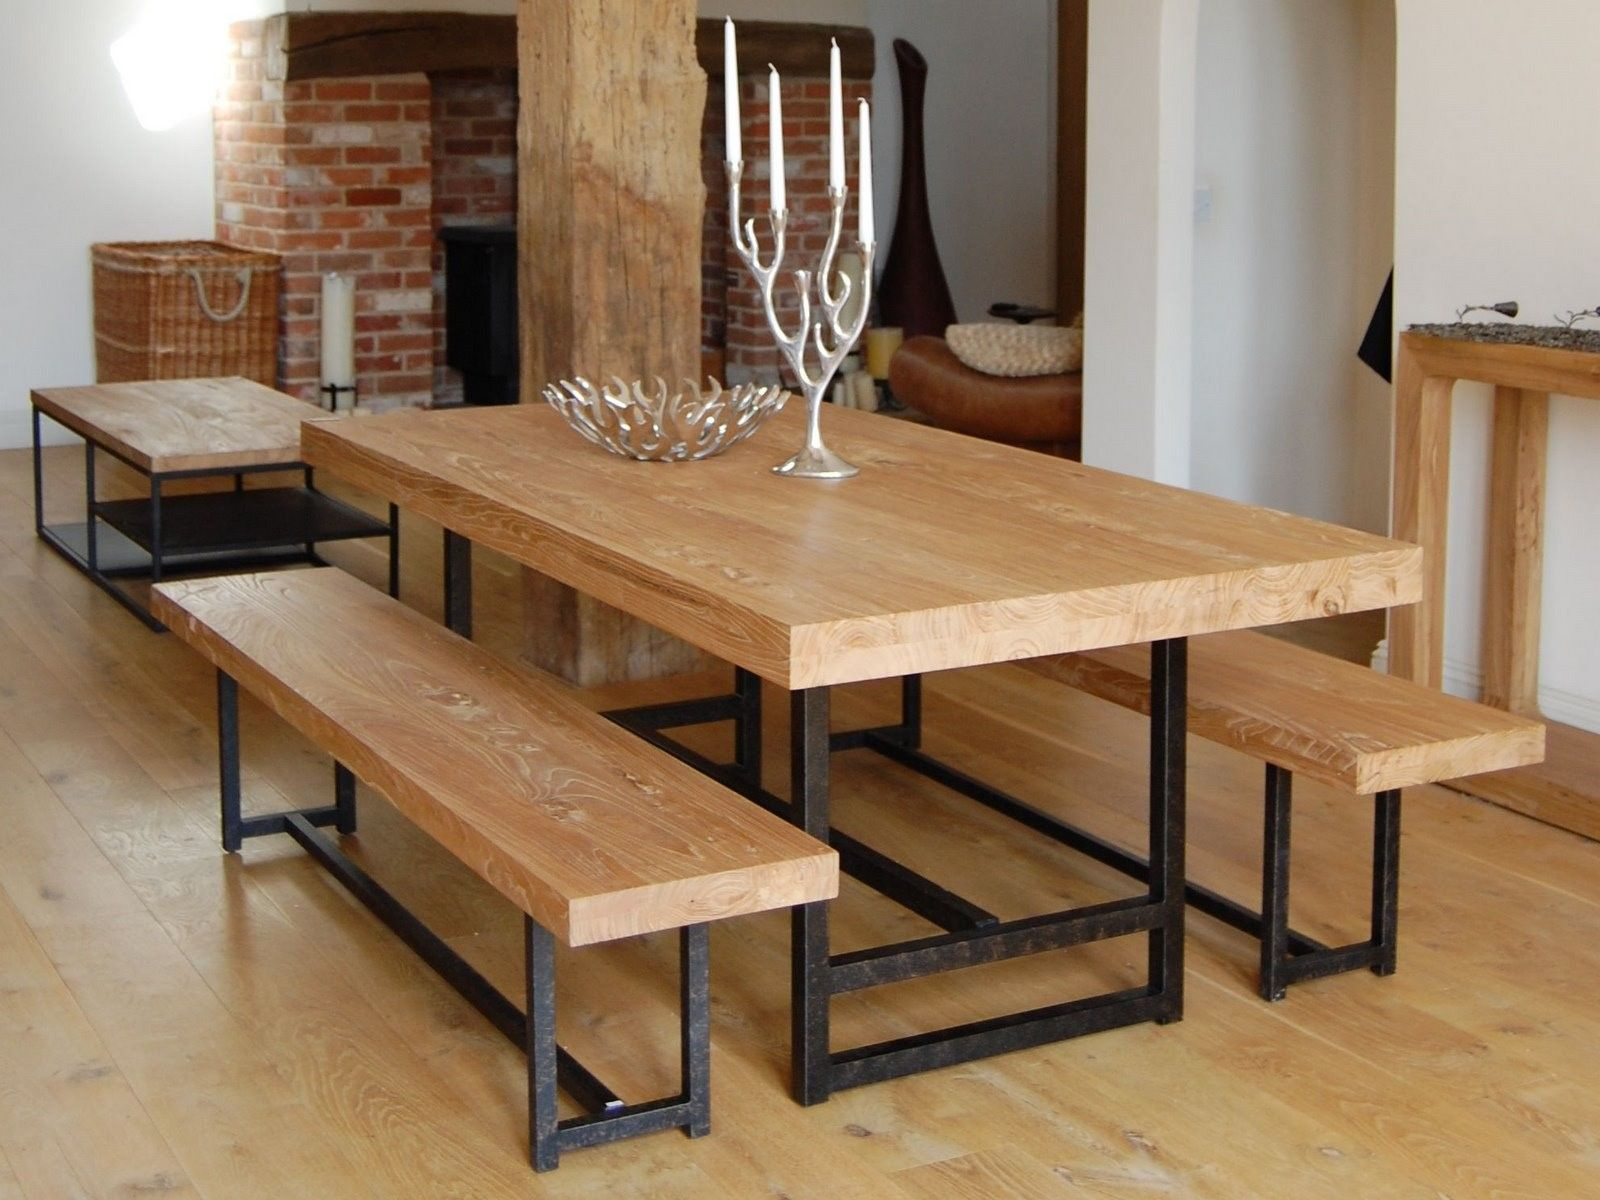 reclaimed wood dining table google search - Restaurant Dining Room Furniture